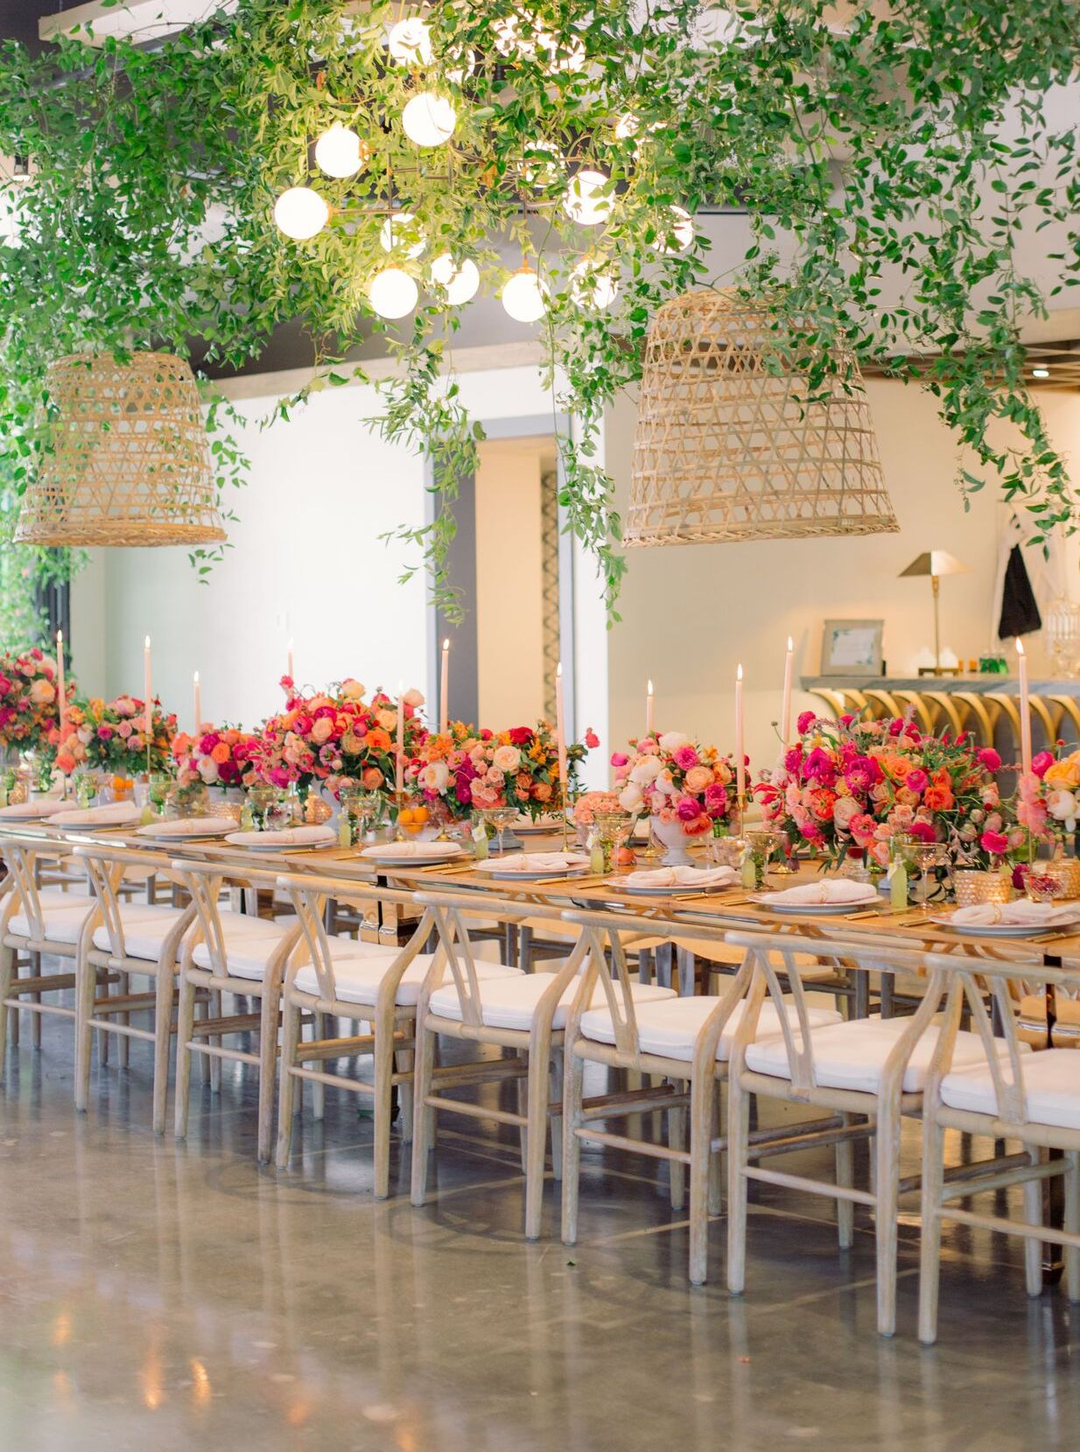 Colorful Garden Inspired Bridal Shower at Casita Hollywood